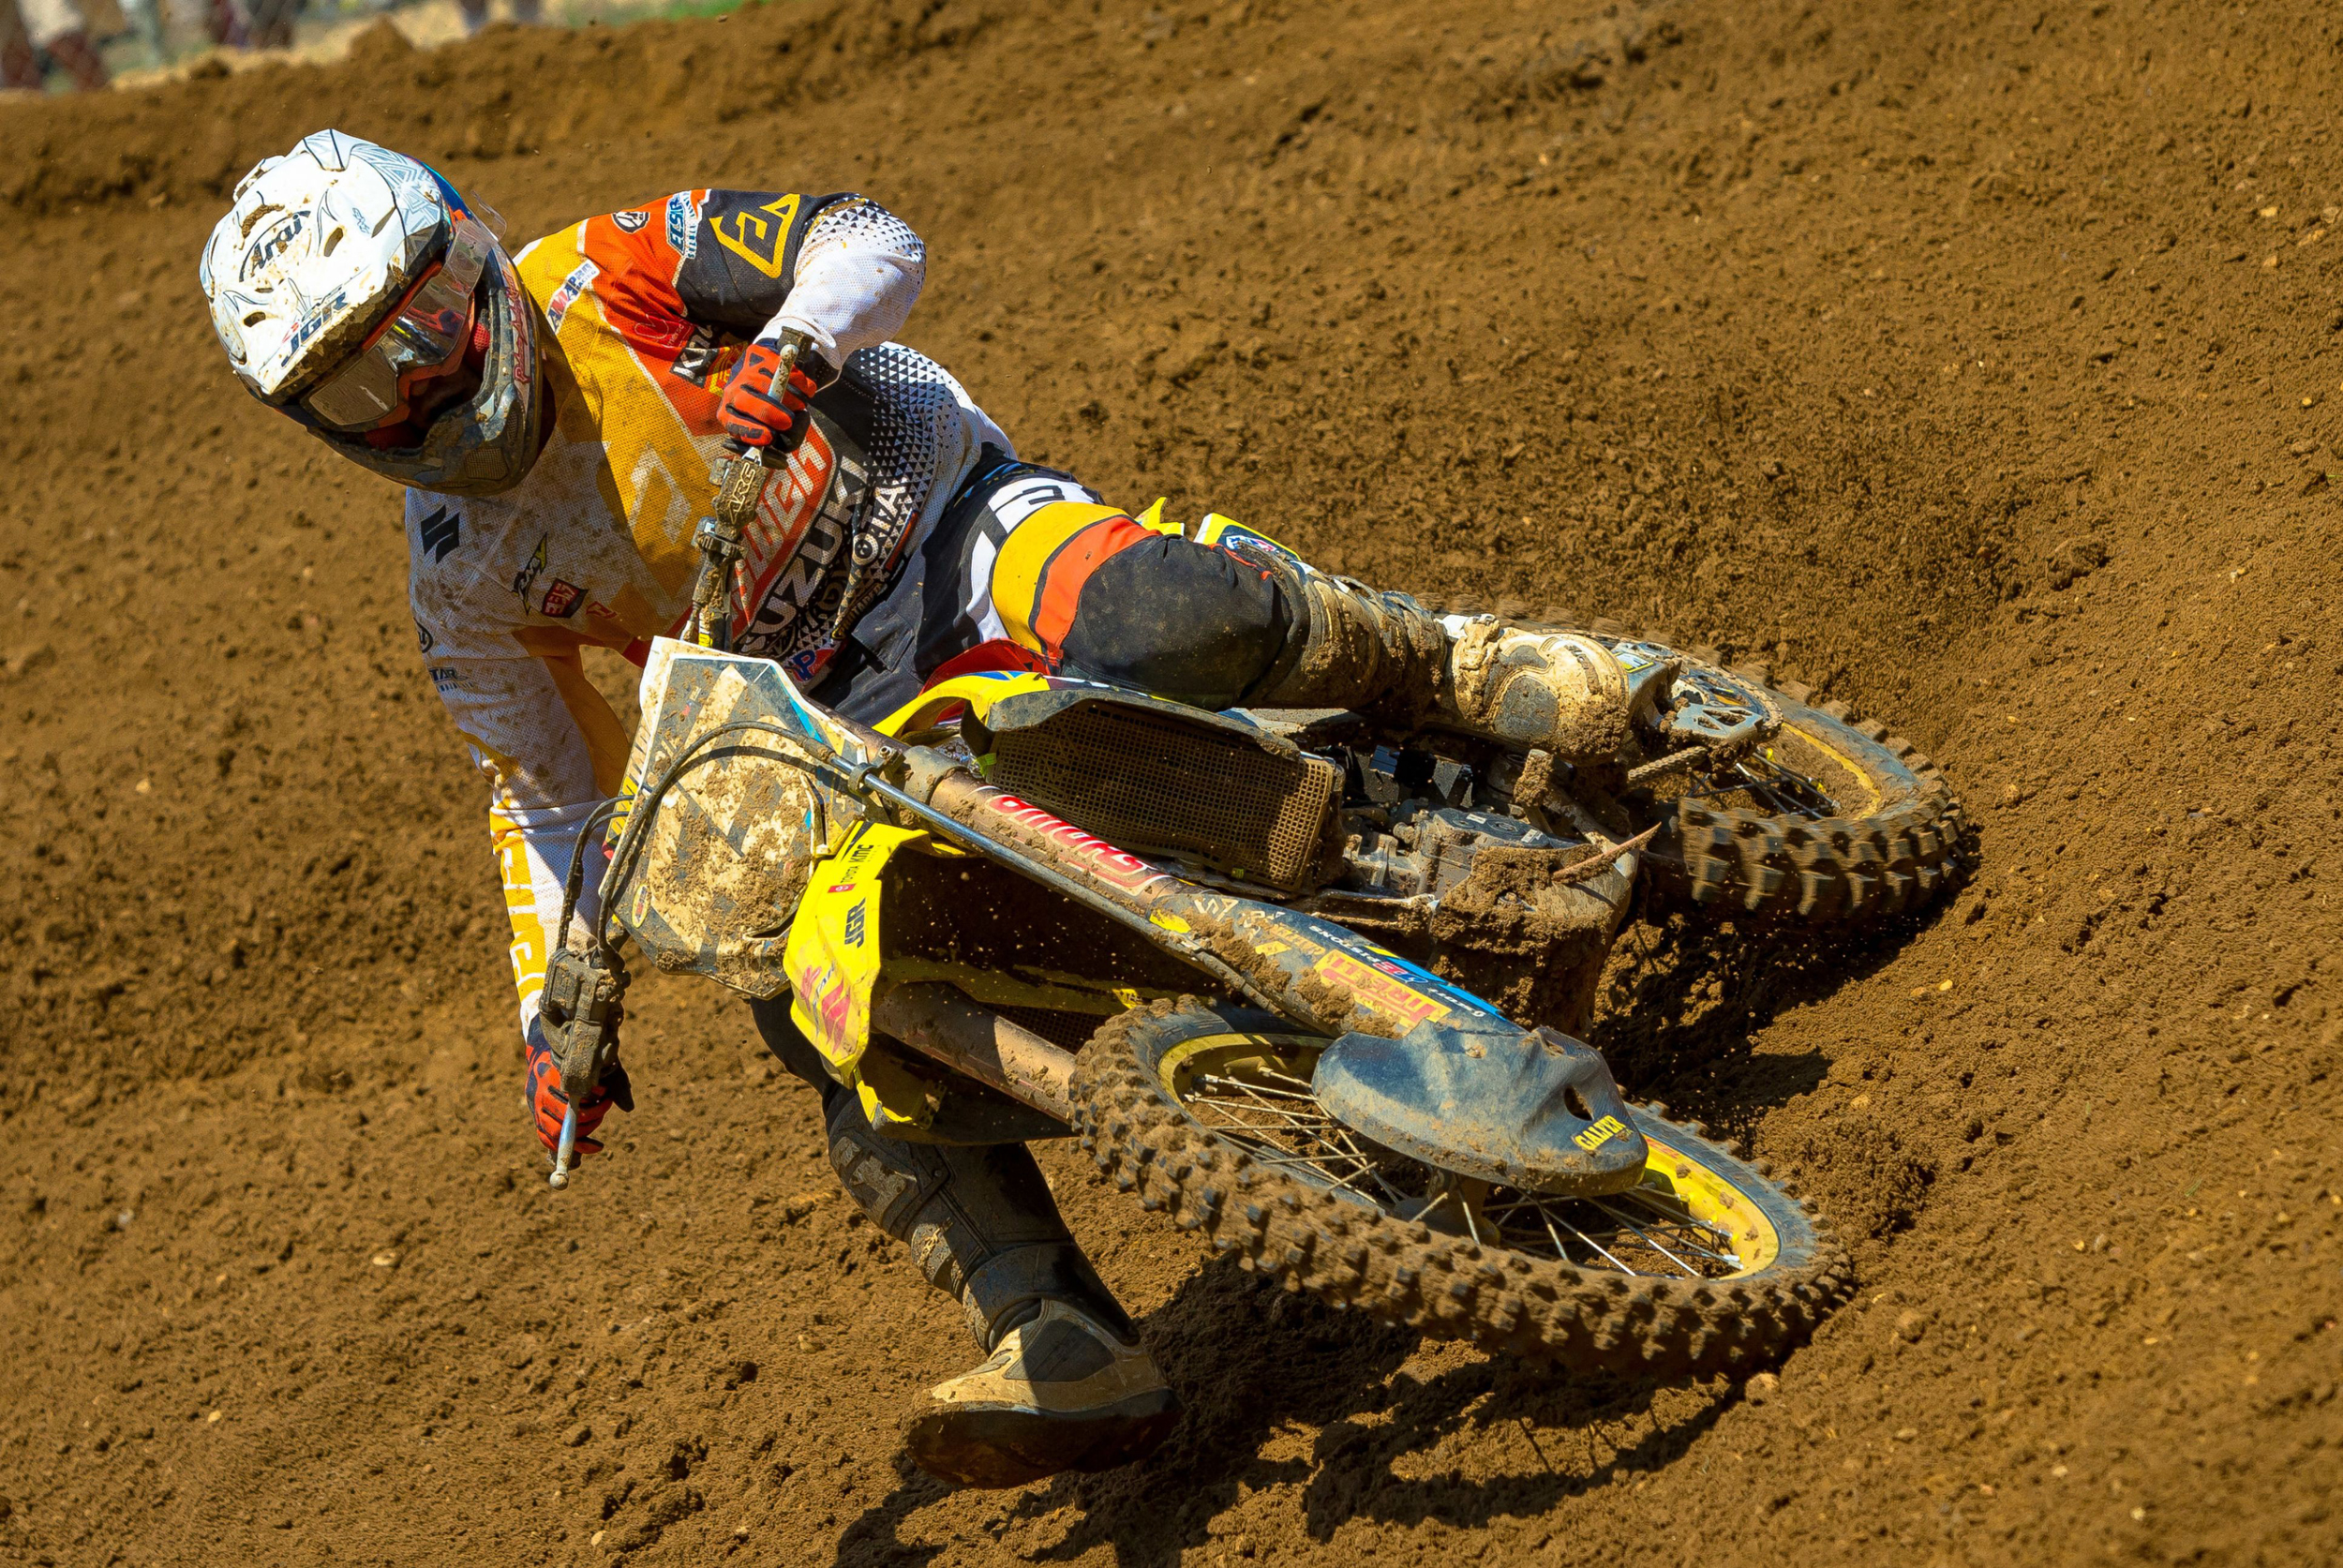 Kyle Peters (#55) pushed through the challenging conditions on his RM-Z250